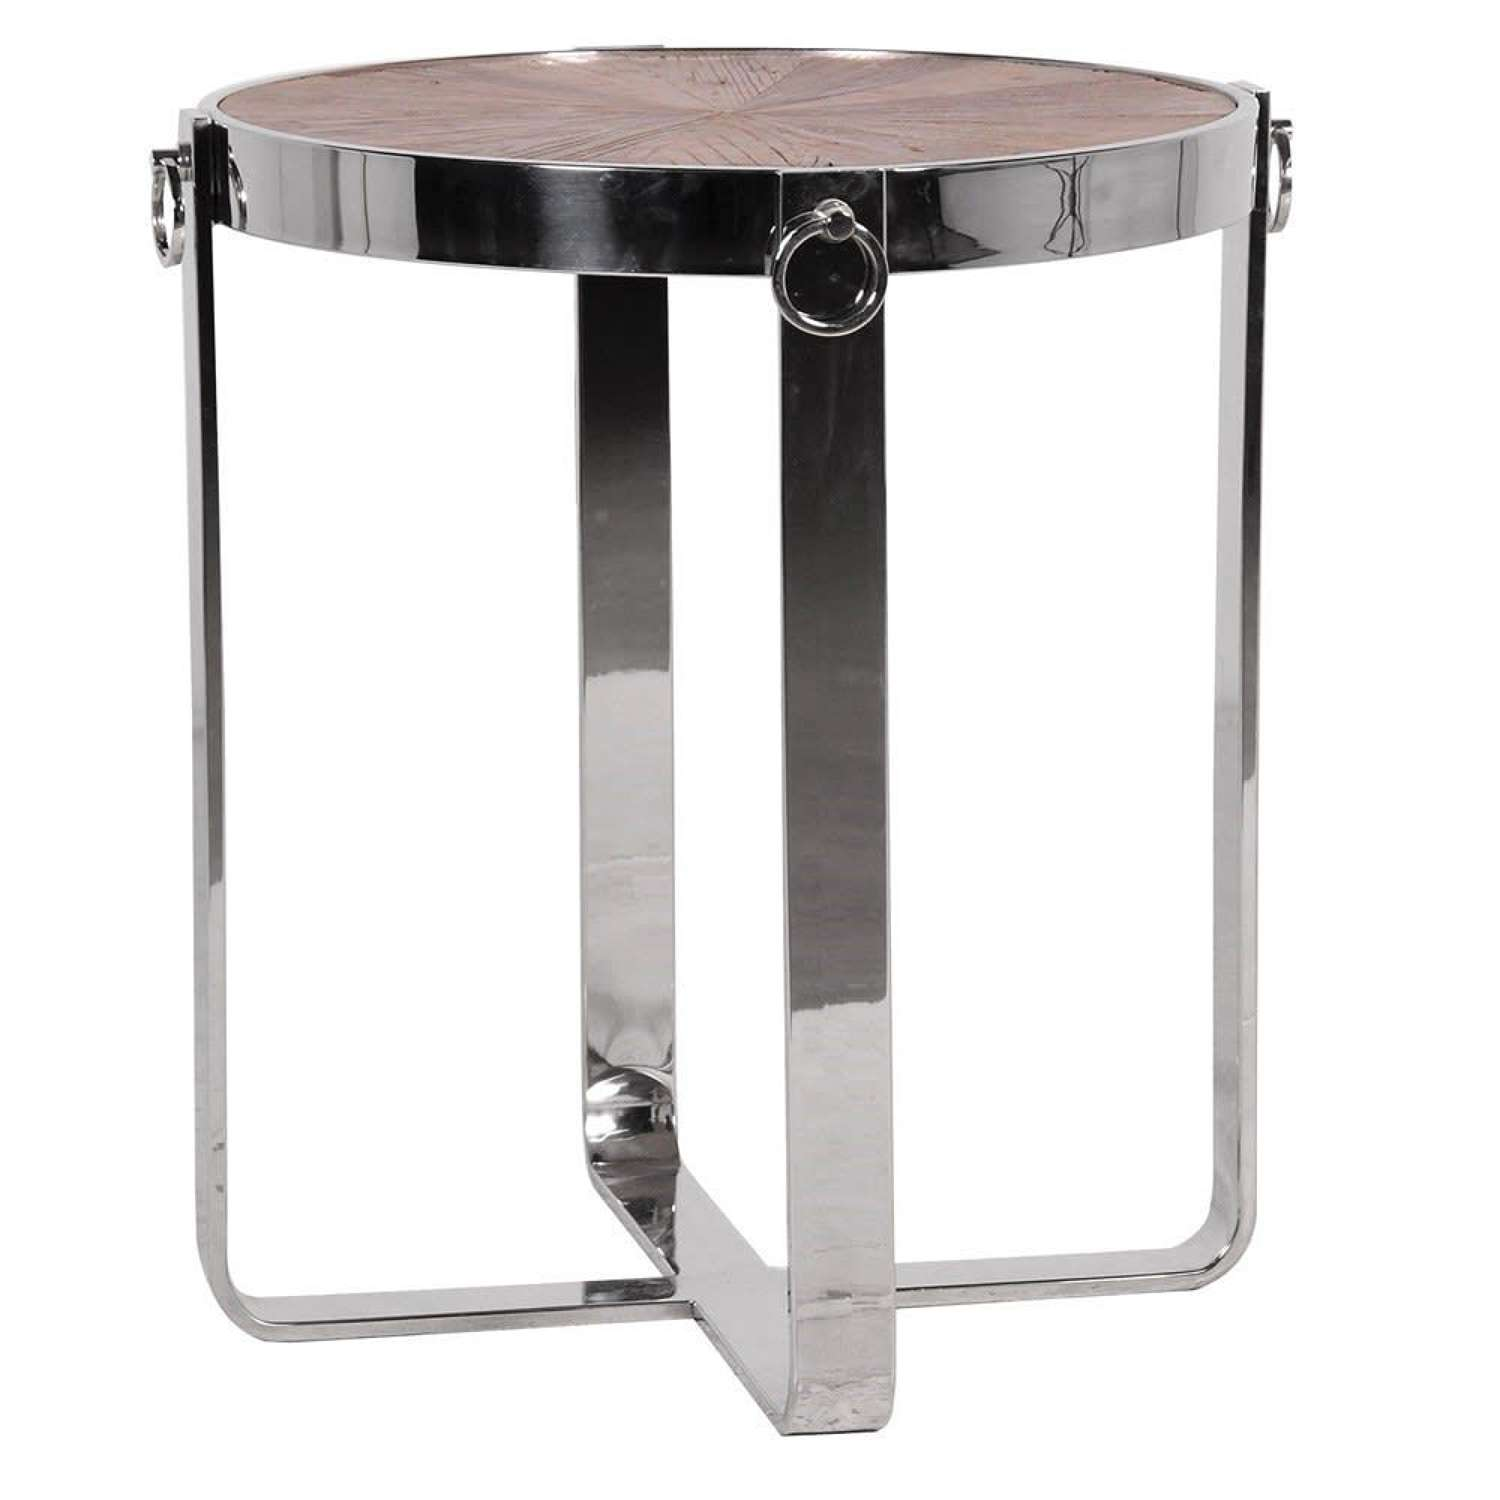 Stainless Steel Round Side Table with Elmwood Top